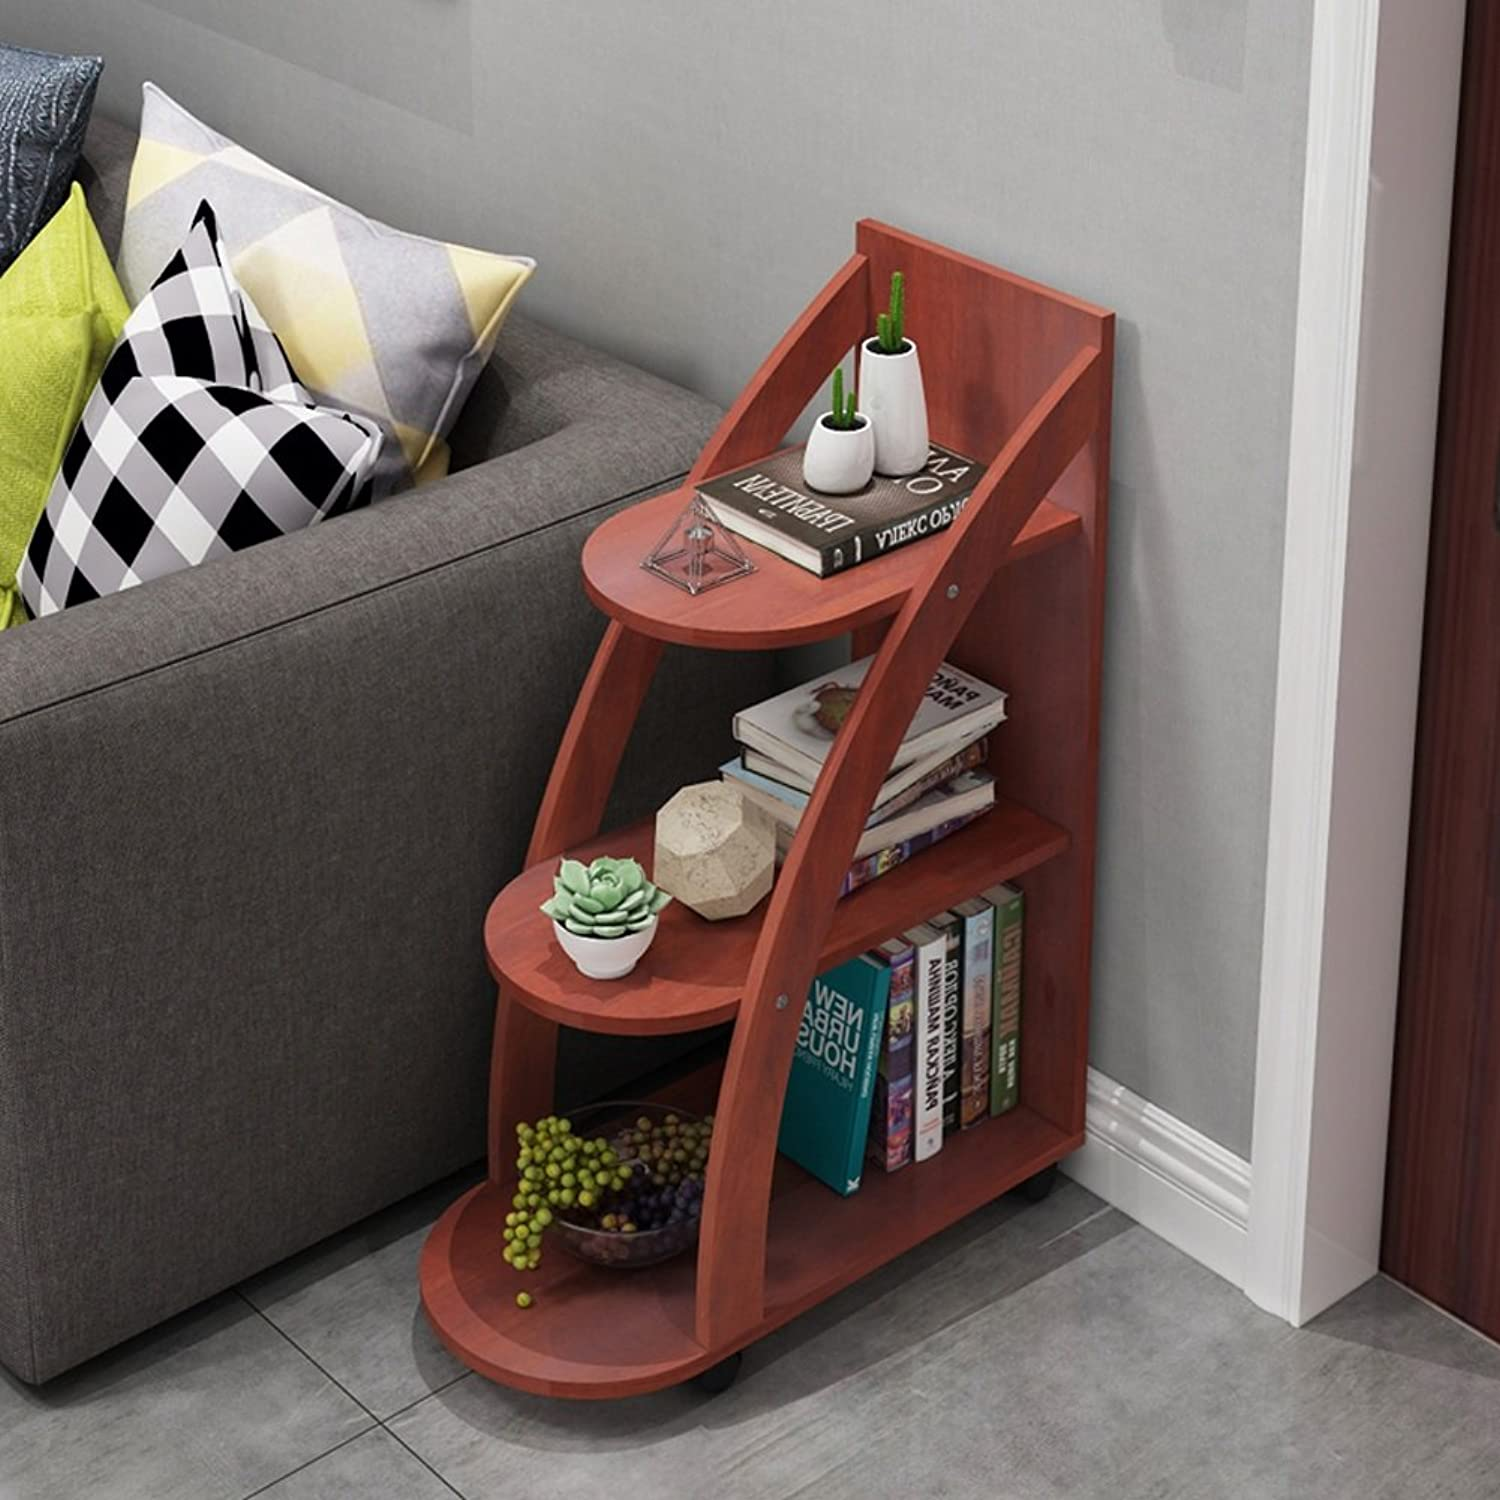 Ash Side Table Sofa Side Creative Small Coffee Table A Few Corner Coffee Table Round (color   RED)